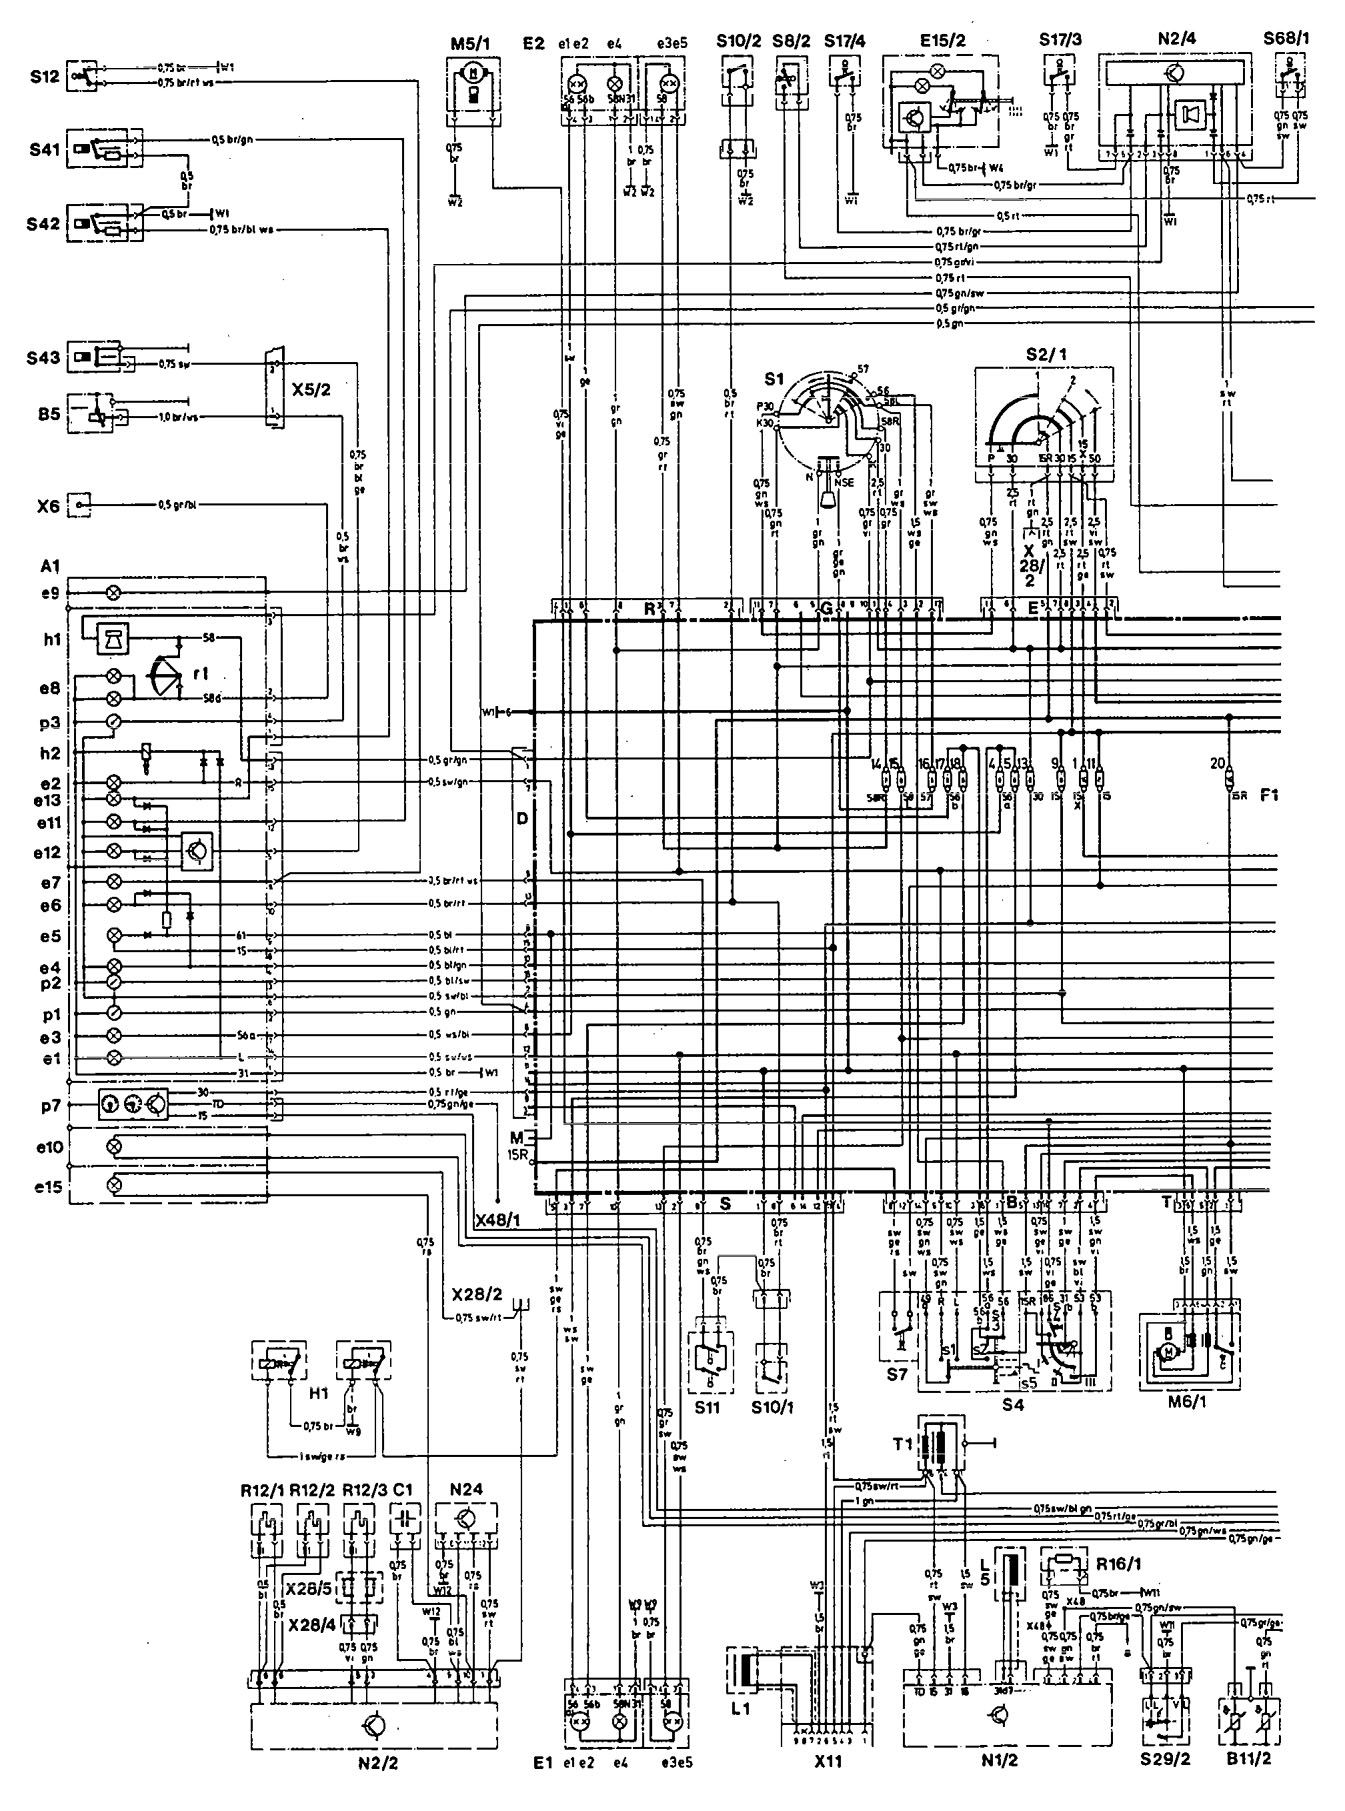 wiring diagram for 1991 mercedes 190e wiring diagram db